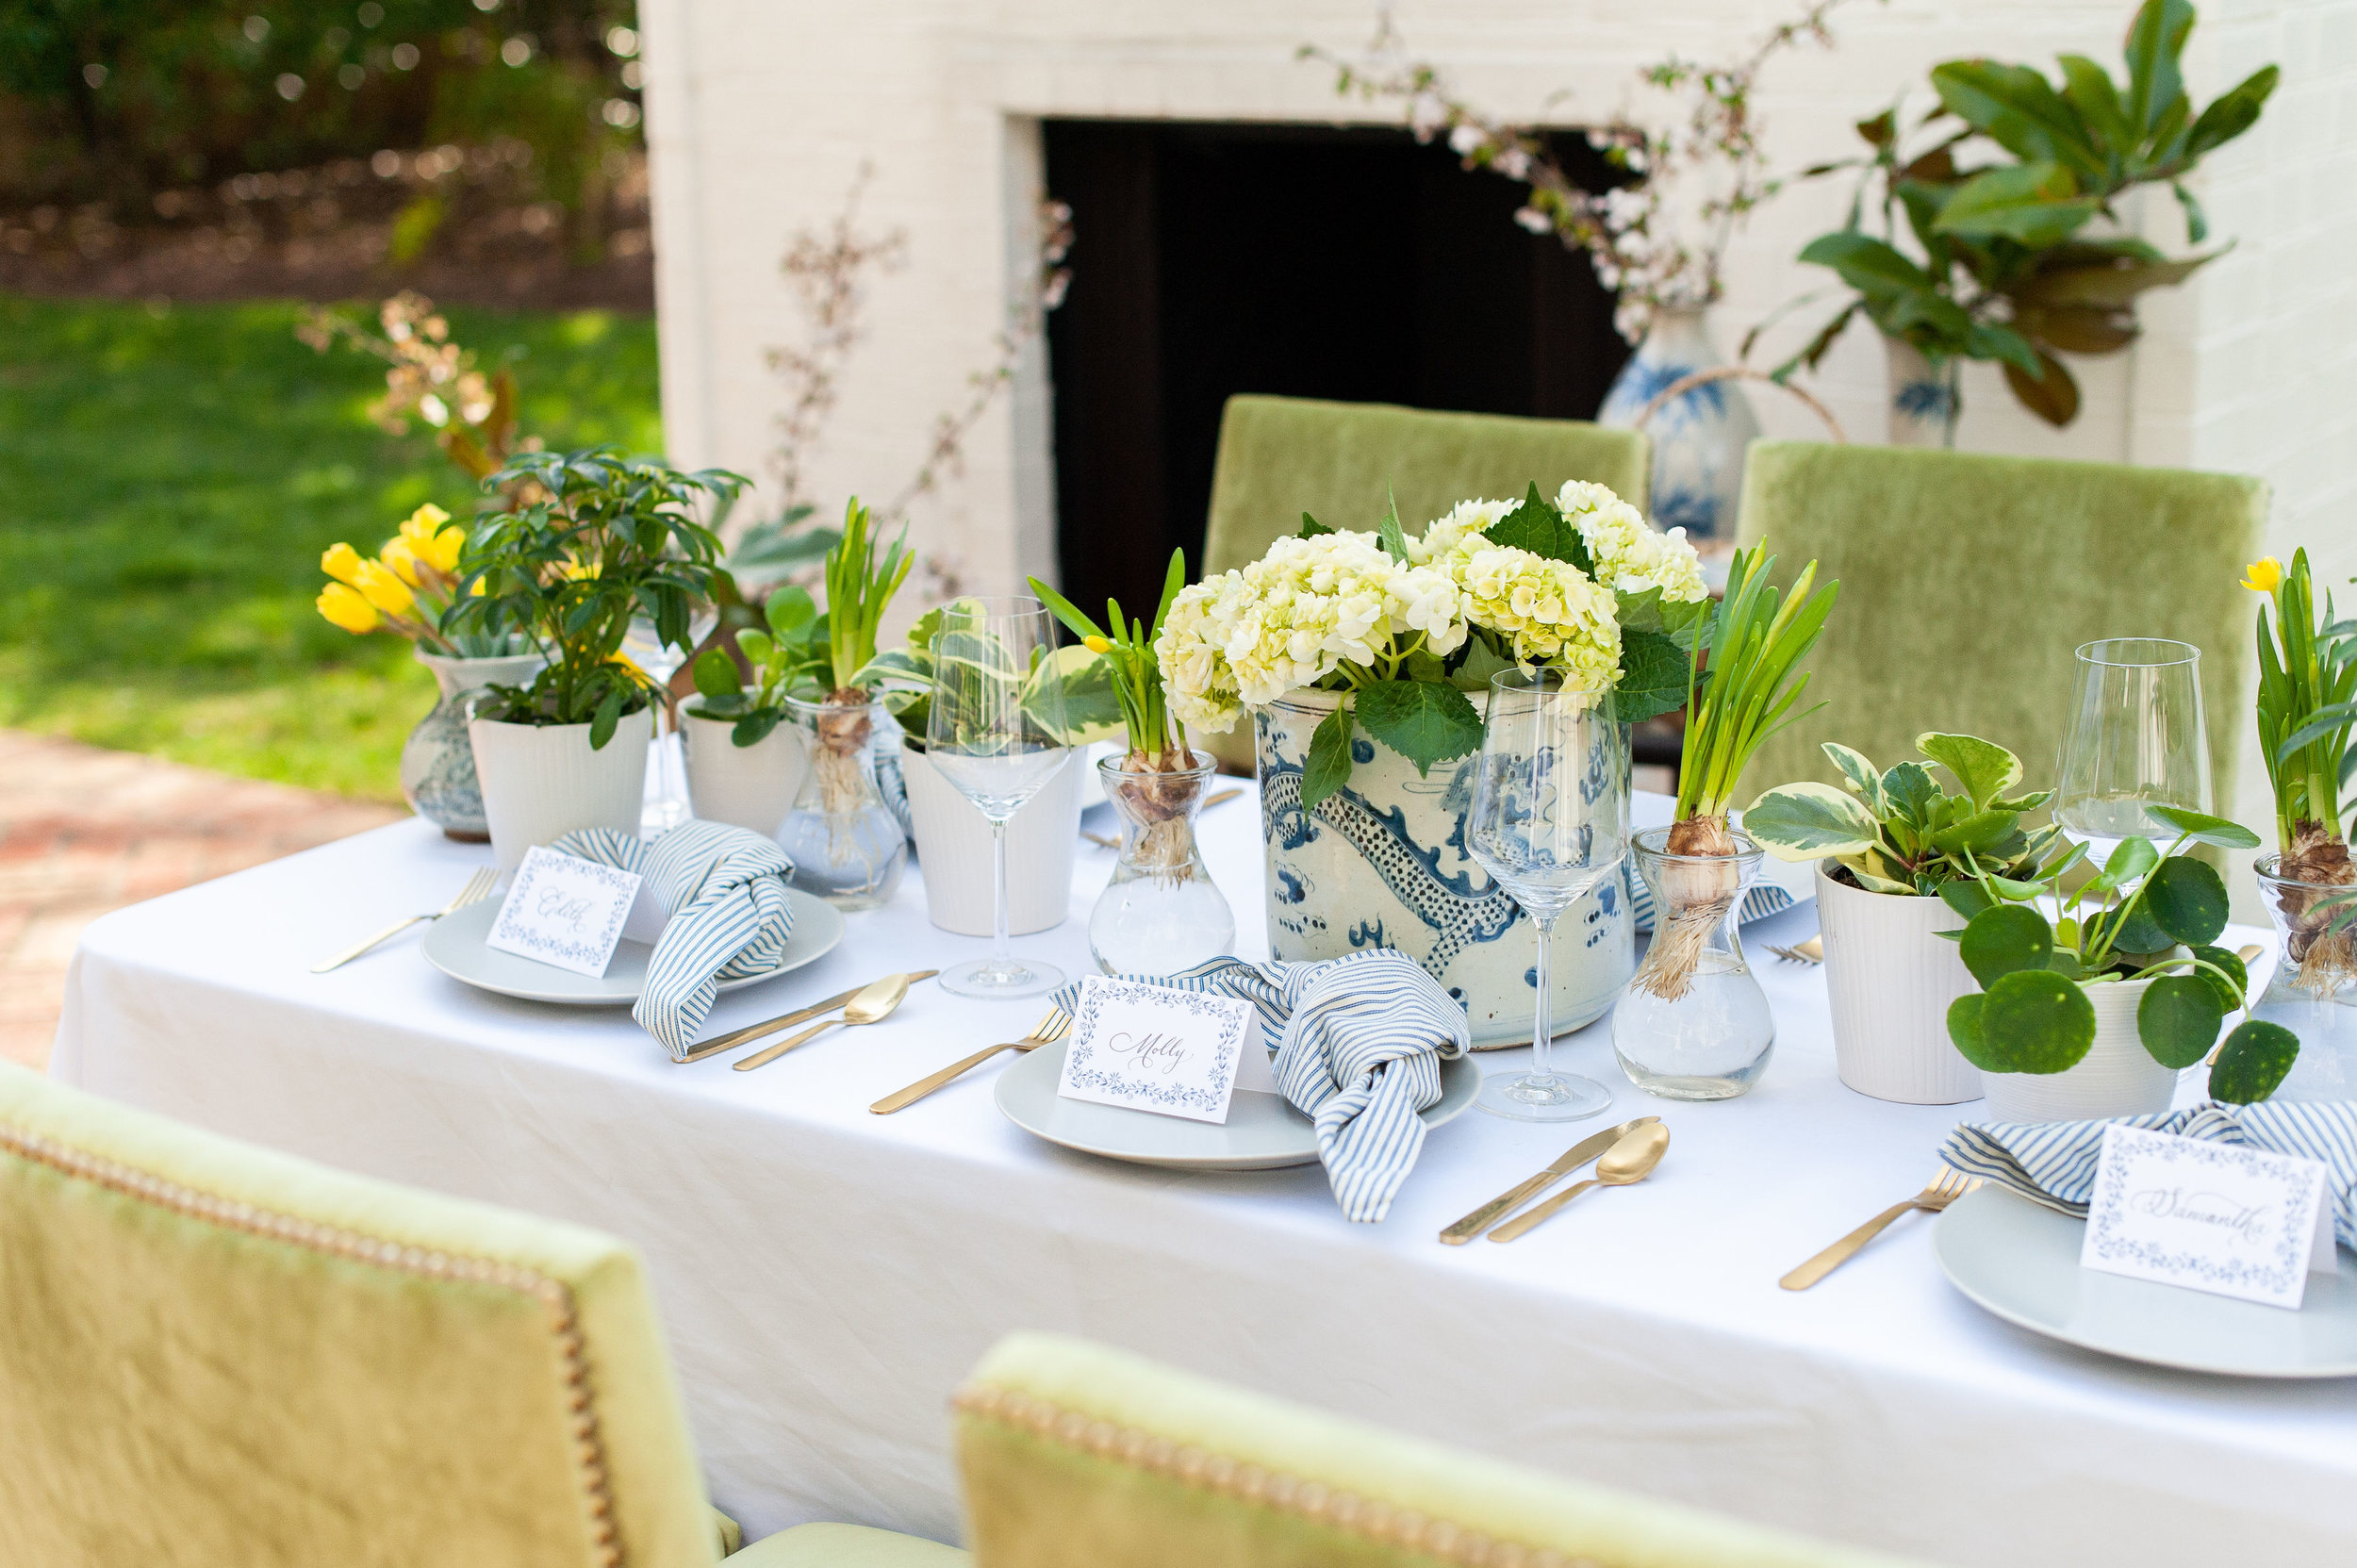 EasterBrunch_CedarLane_TSG-23.jpg